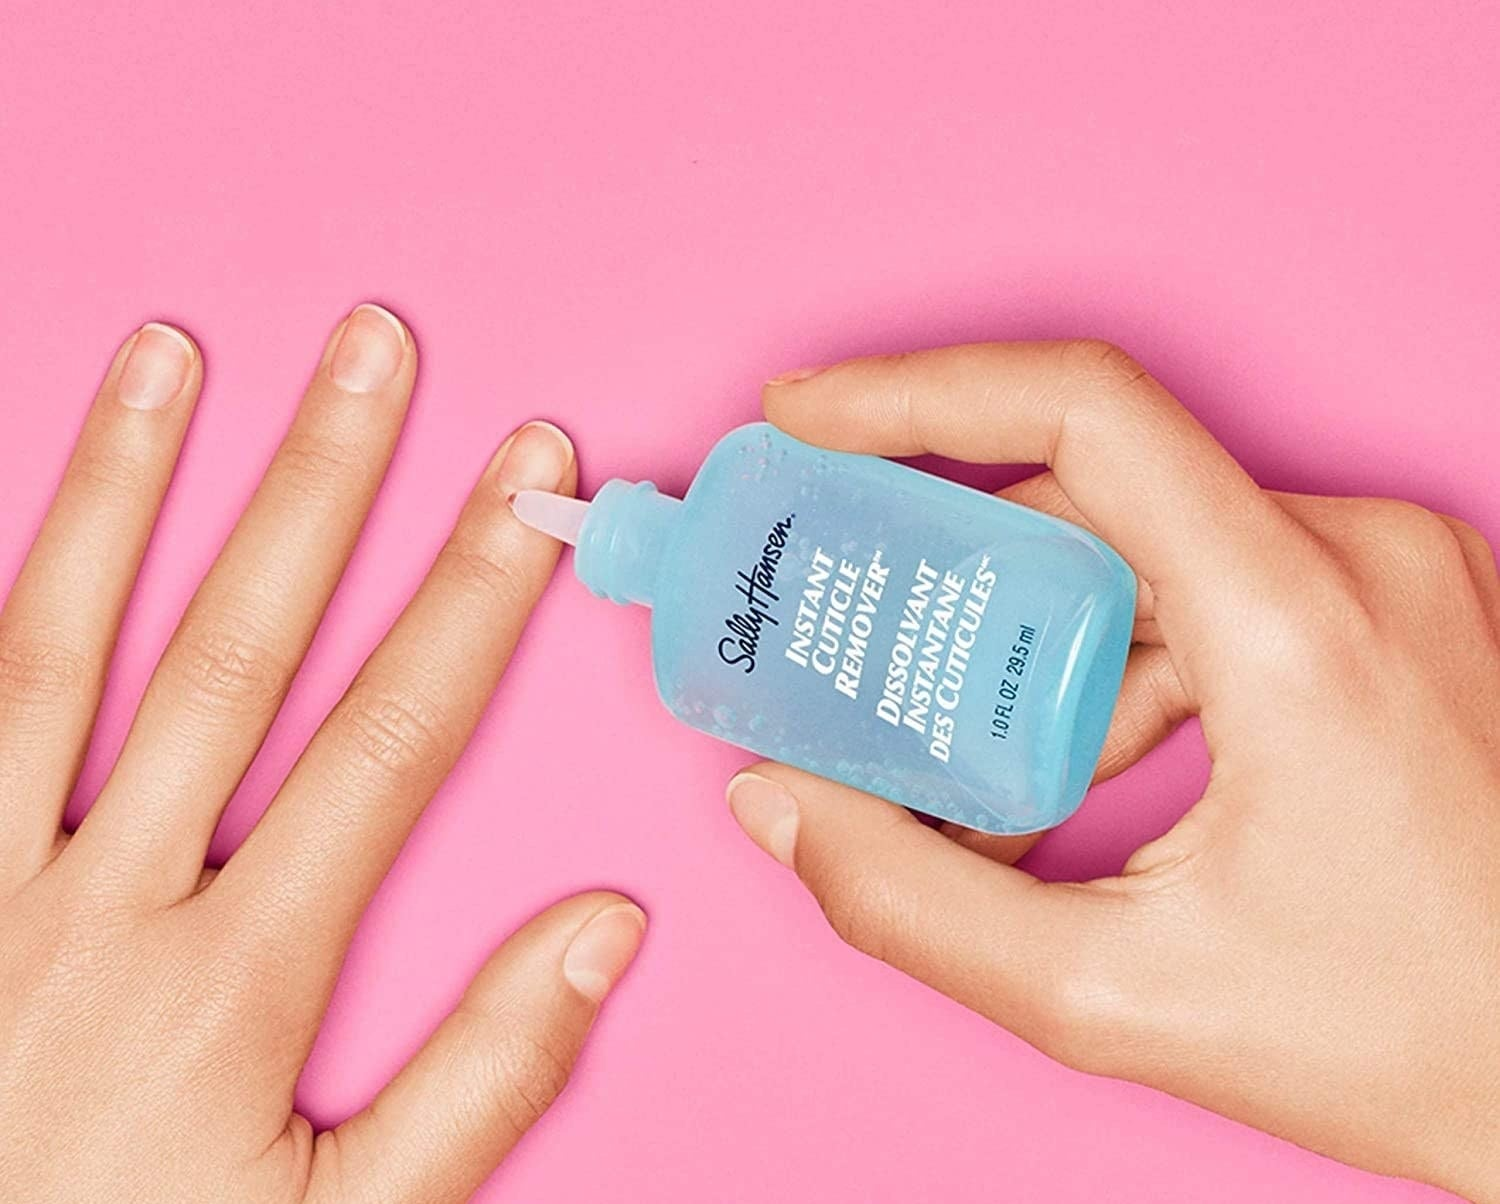 A person holding the cuticle removing solution to their cuticle